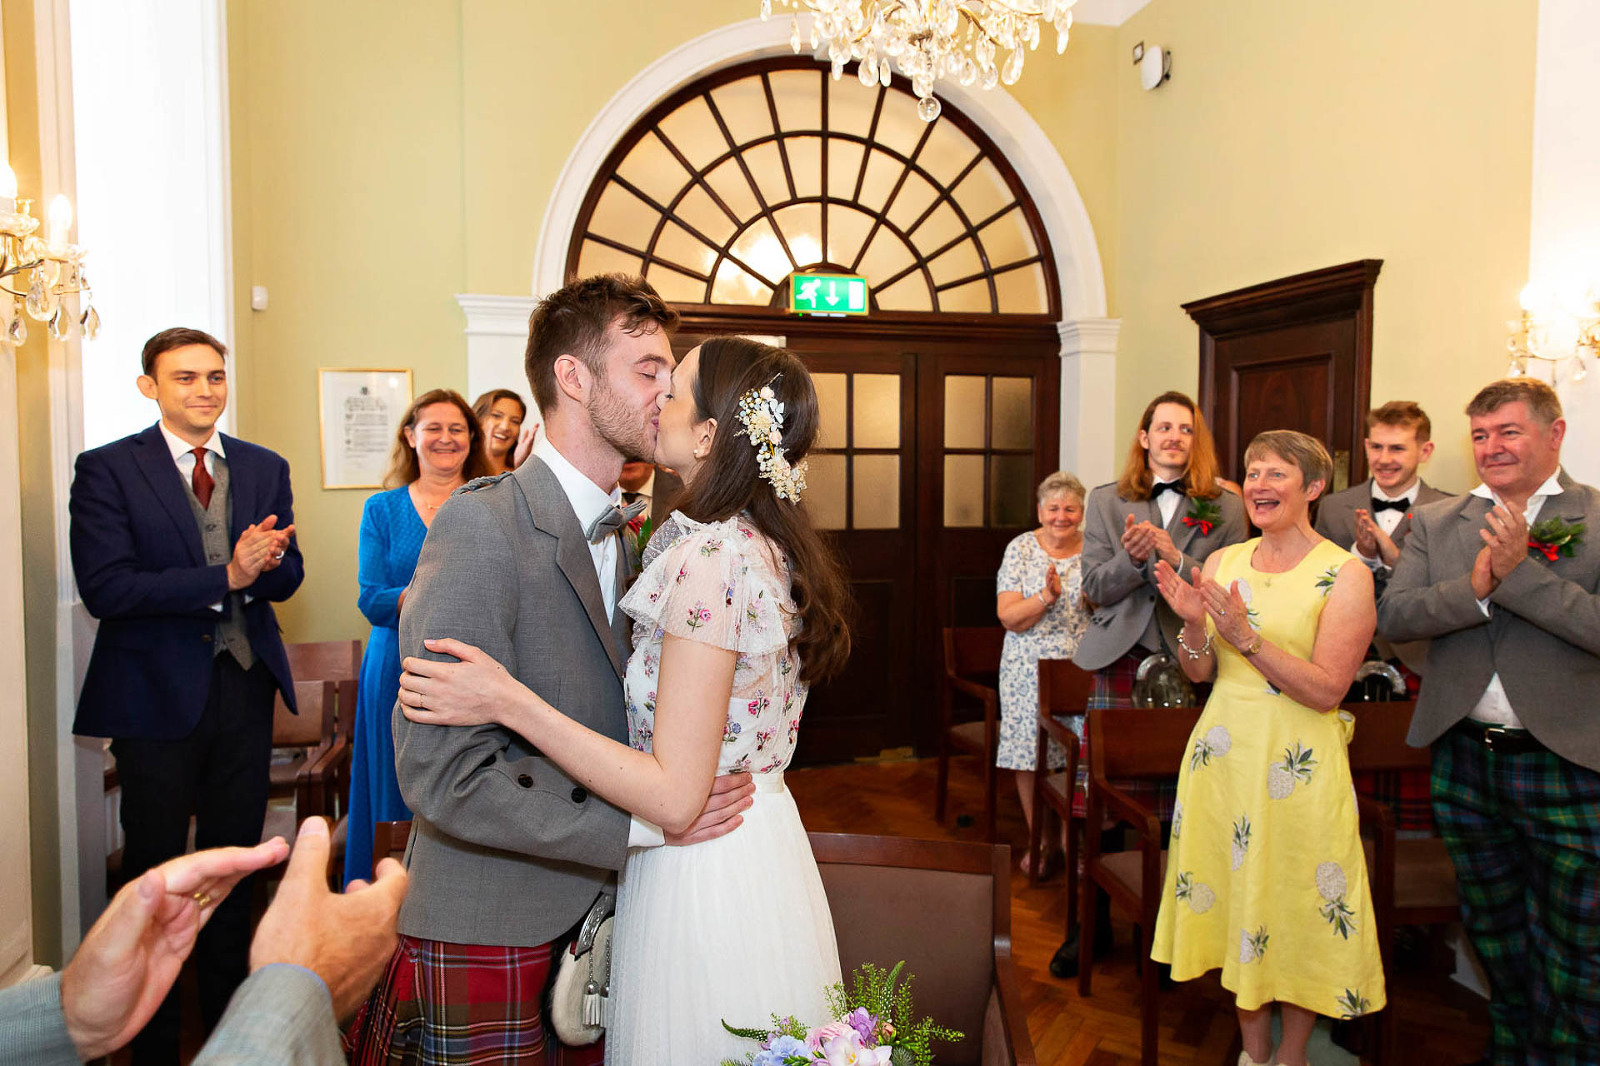 Bride and groom kiss after being announced man and wife after their civil wedding in the Rossetti Room at Chelsea Town Hall on Kings Road.